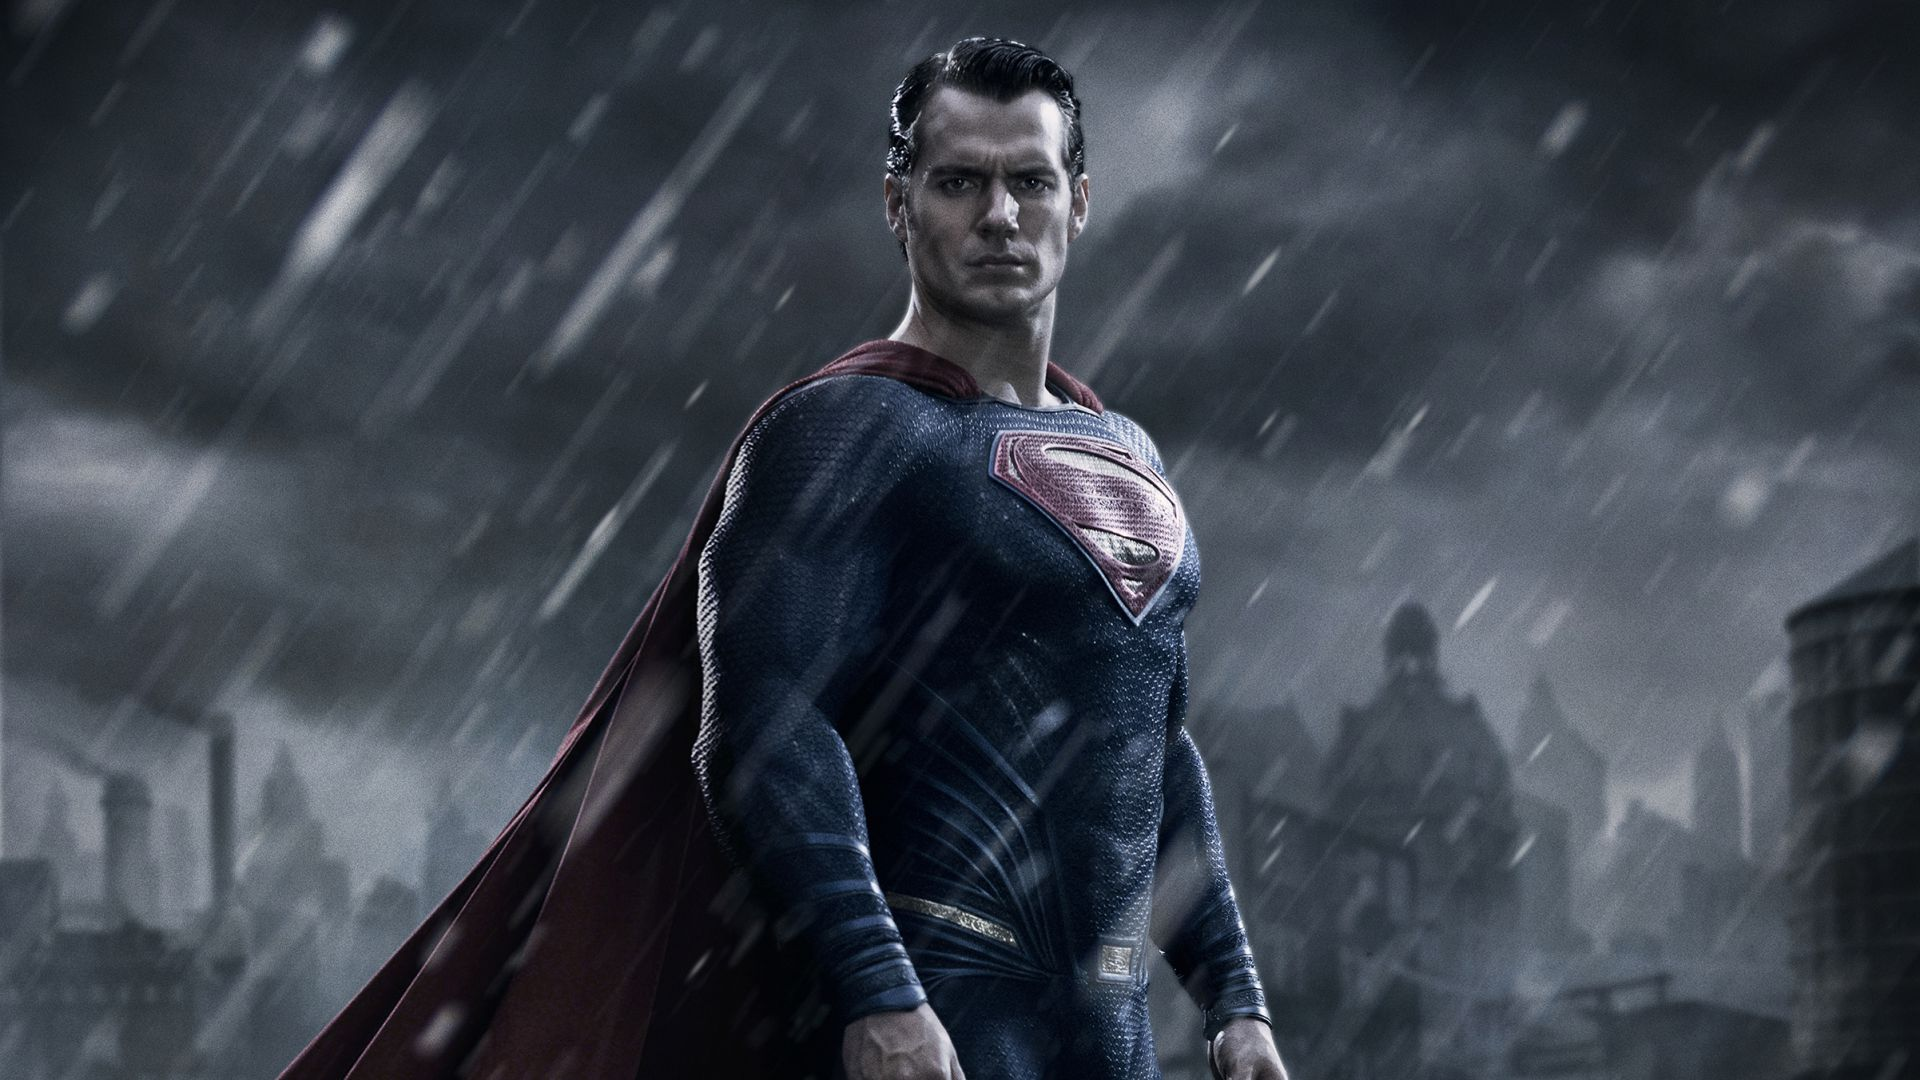 Batman v Superman: Dawn of Justice, Best Movies of 2015, movie, Henry Cavill, Superman (horizontal)